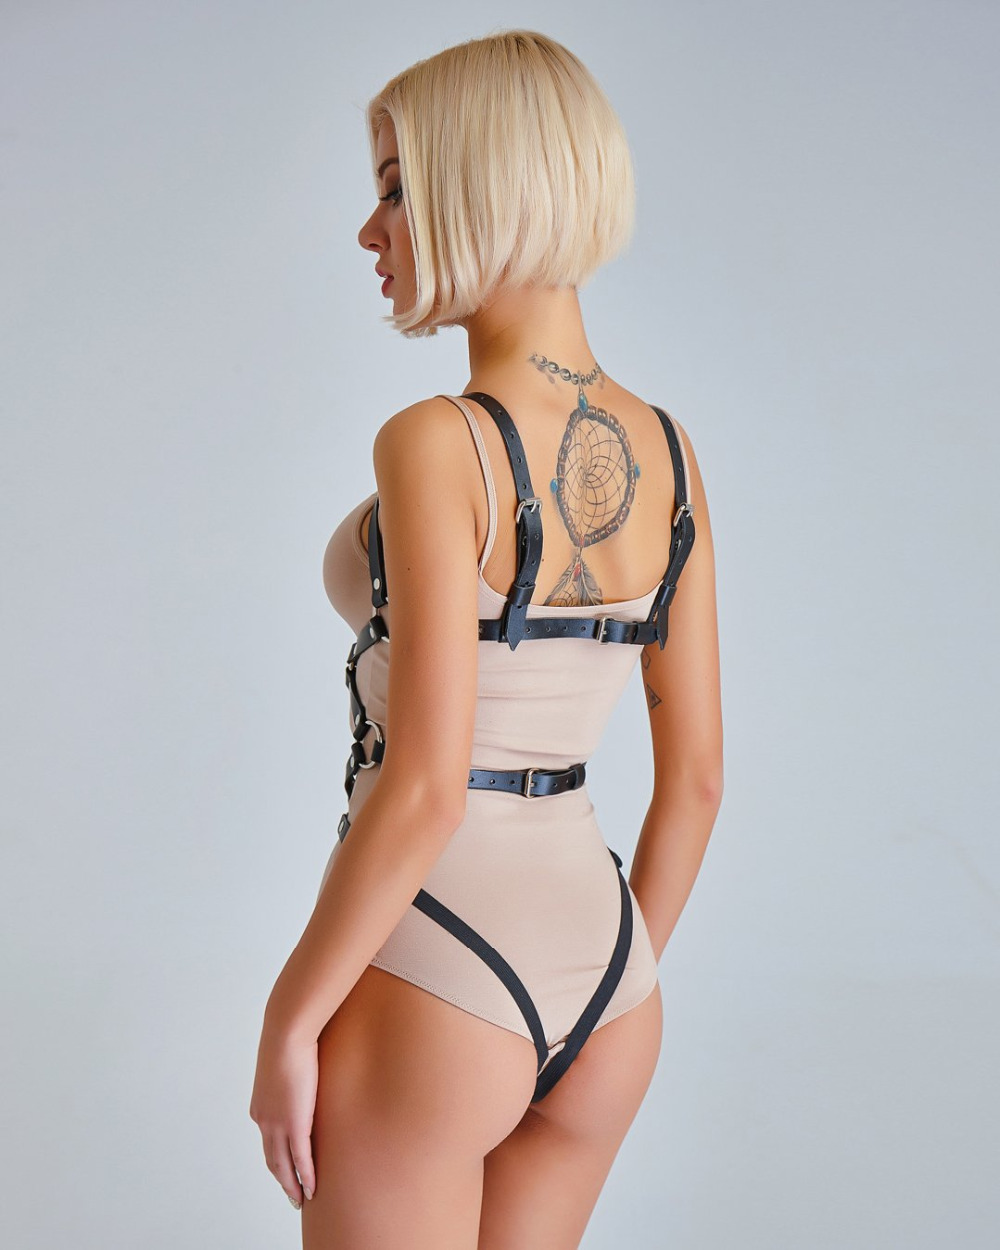 dr_harness11500_2048x2048